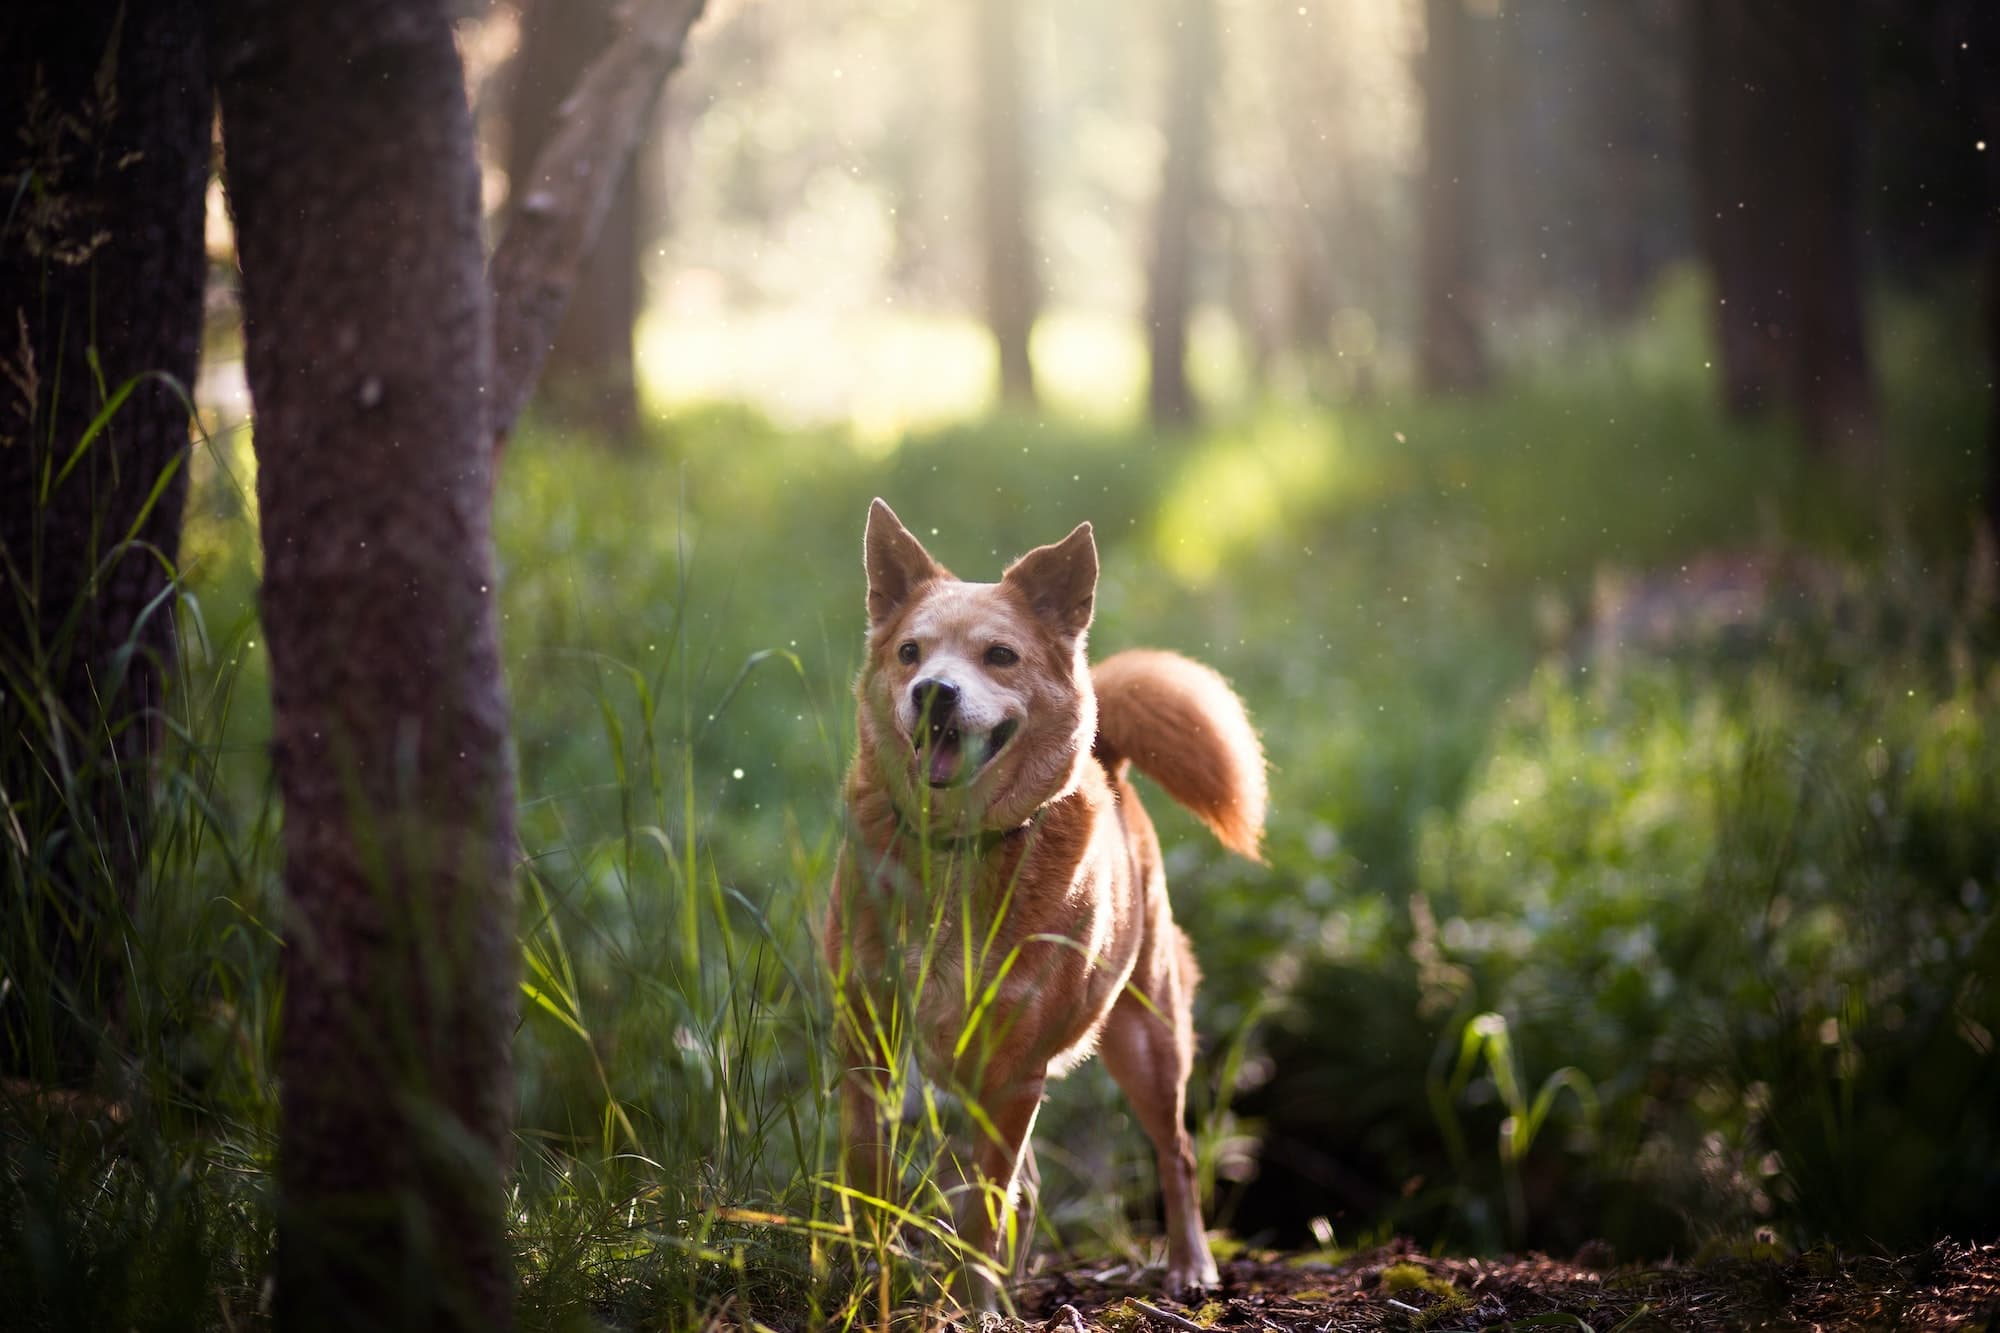 A dog on walk in the woods